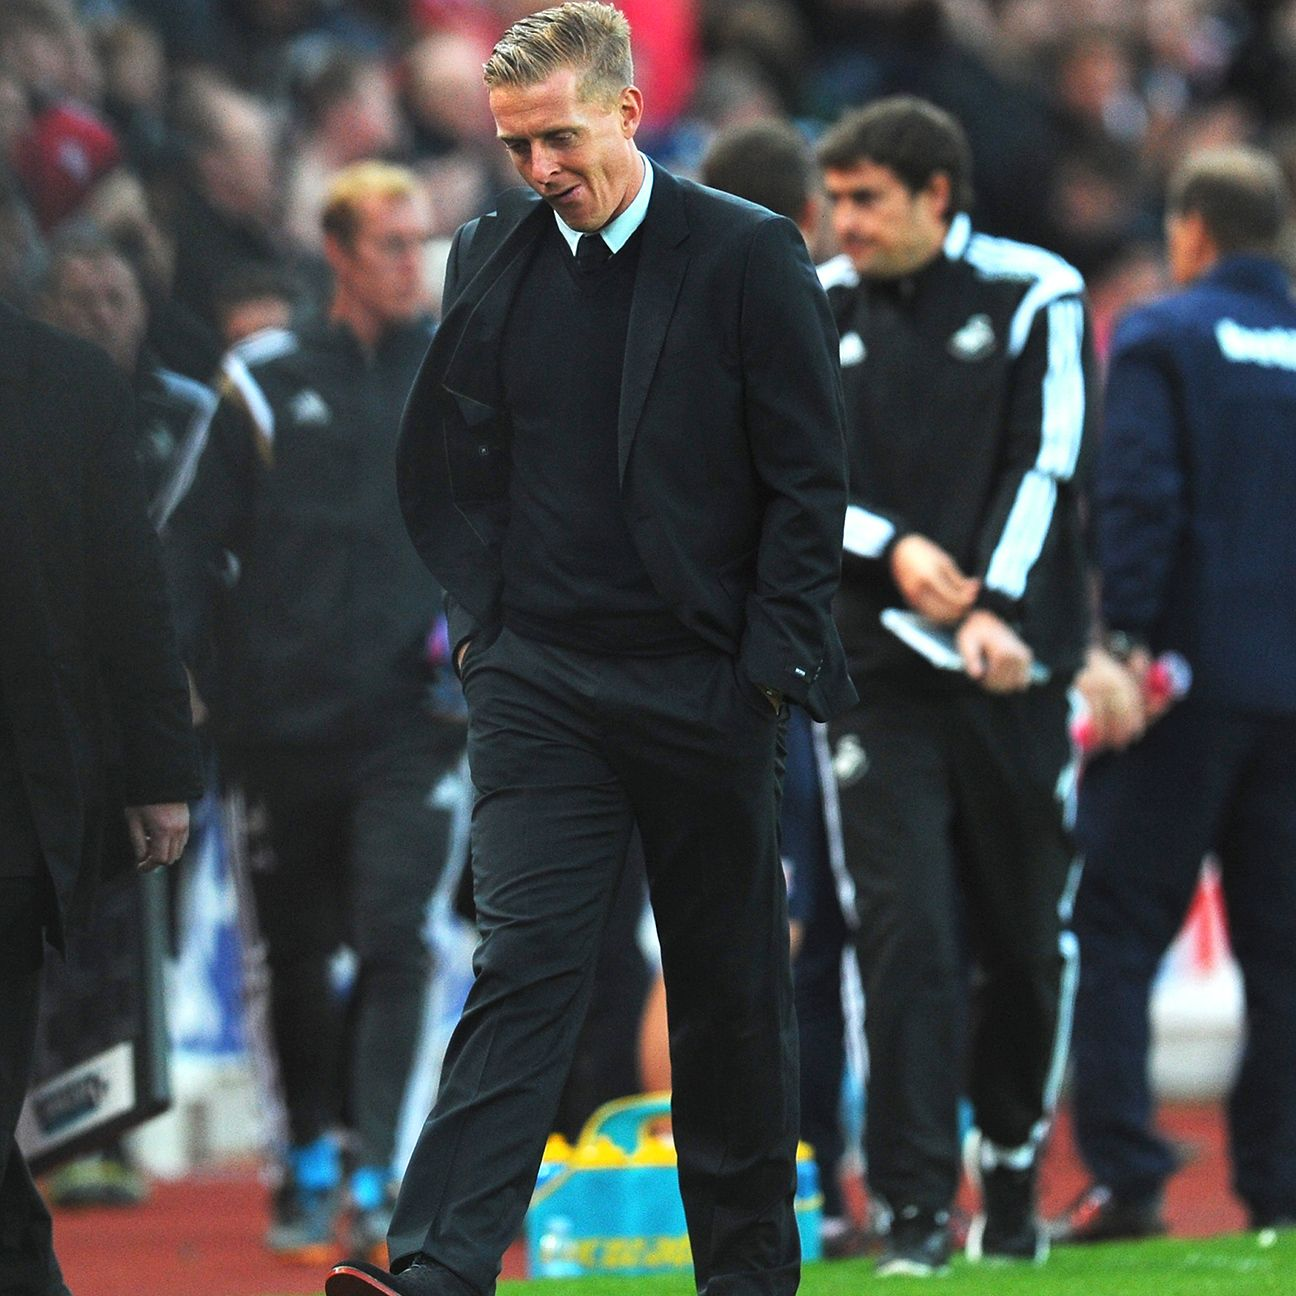 Swansea boss Garry Monk was none too pleased with the officiating in the Swans' 2-1 defeat to Stoke on Sunday.